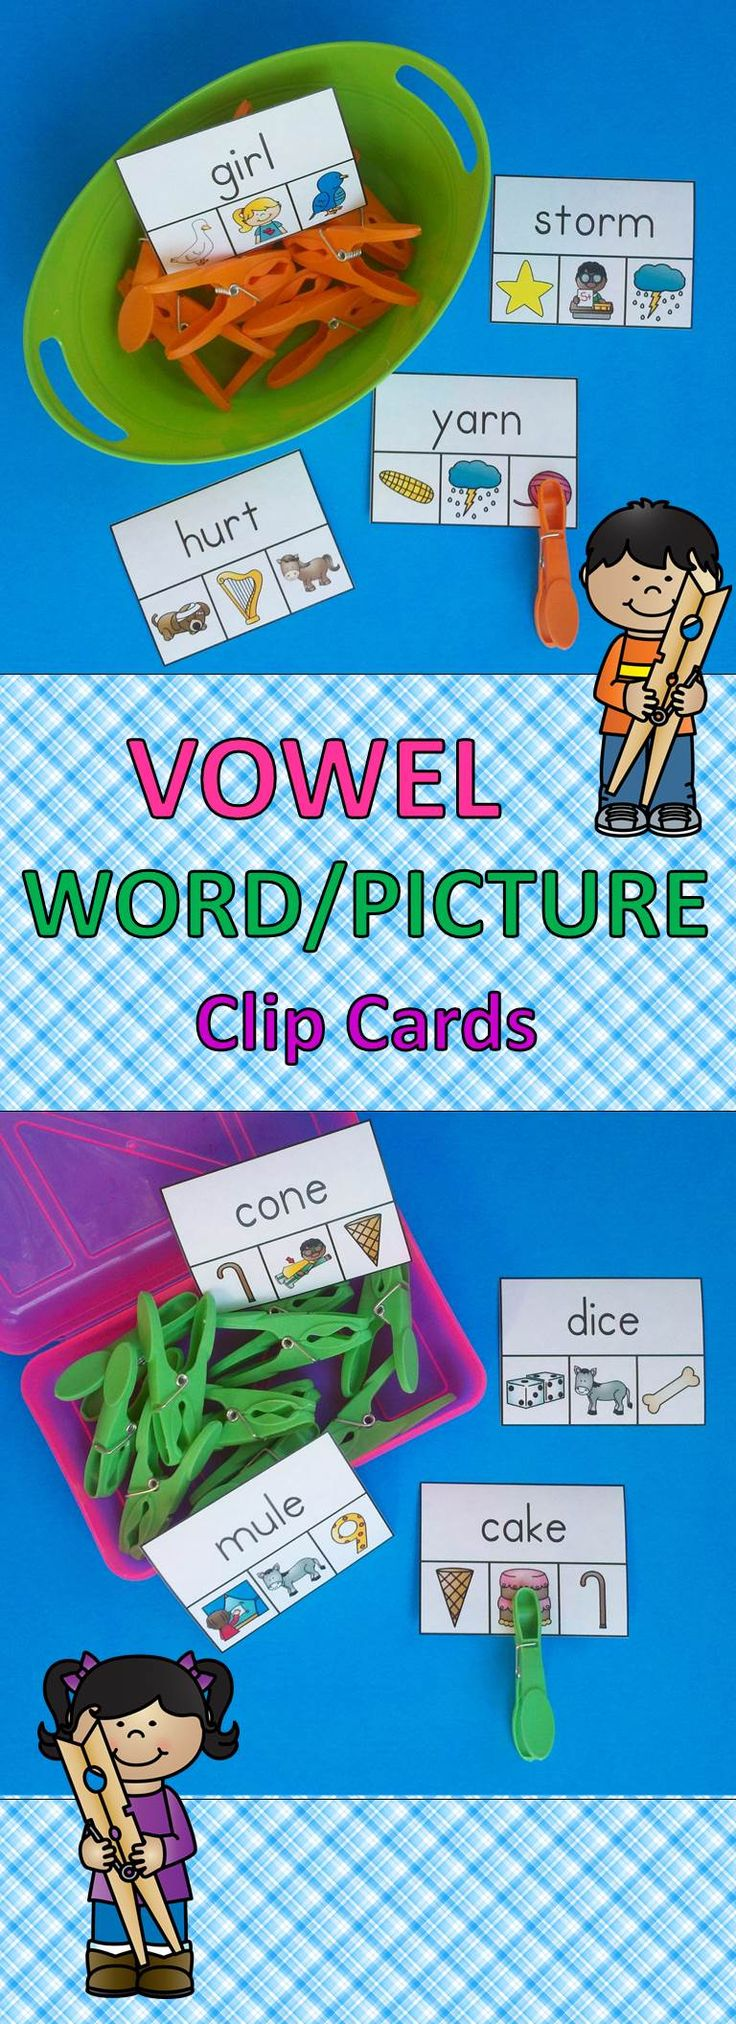 Engaging Phonics Clip Card Activities for your Little Learners!  $   #Vowels #phonics #spellingpatterns #kampkindergarten #clipcards #literacyactivities  https://www.teacherspayteachers.com/Product/Vowel-WordPicture-Clip-Cards-2264473